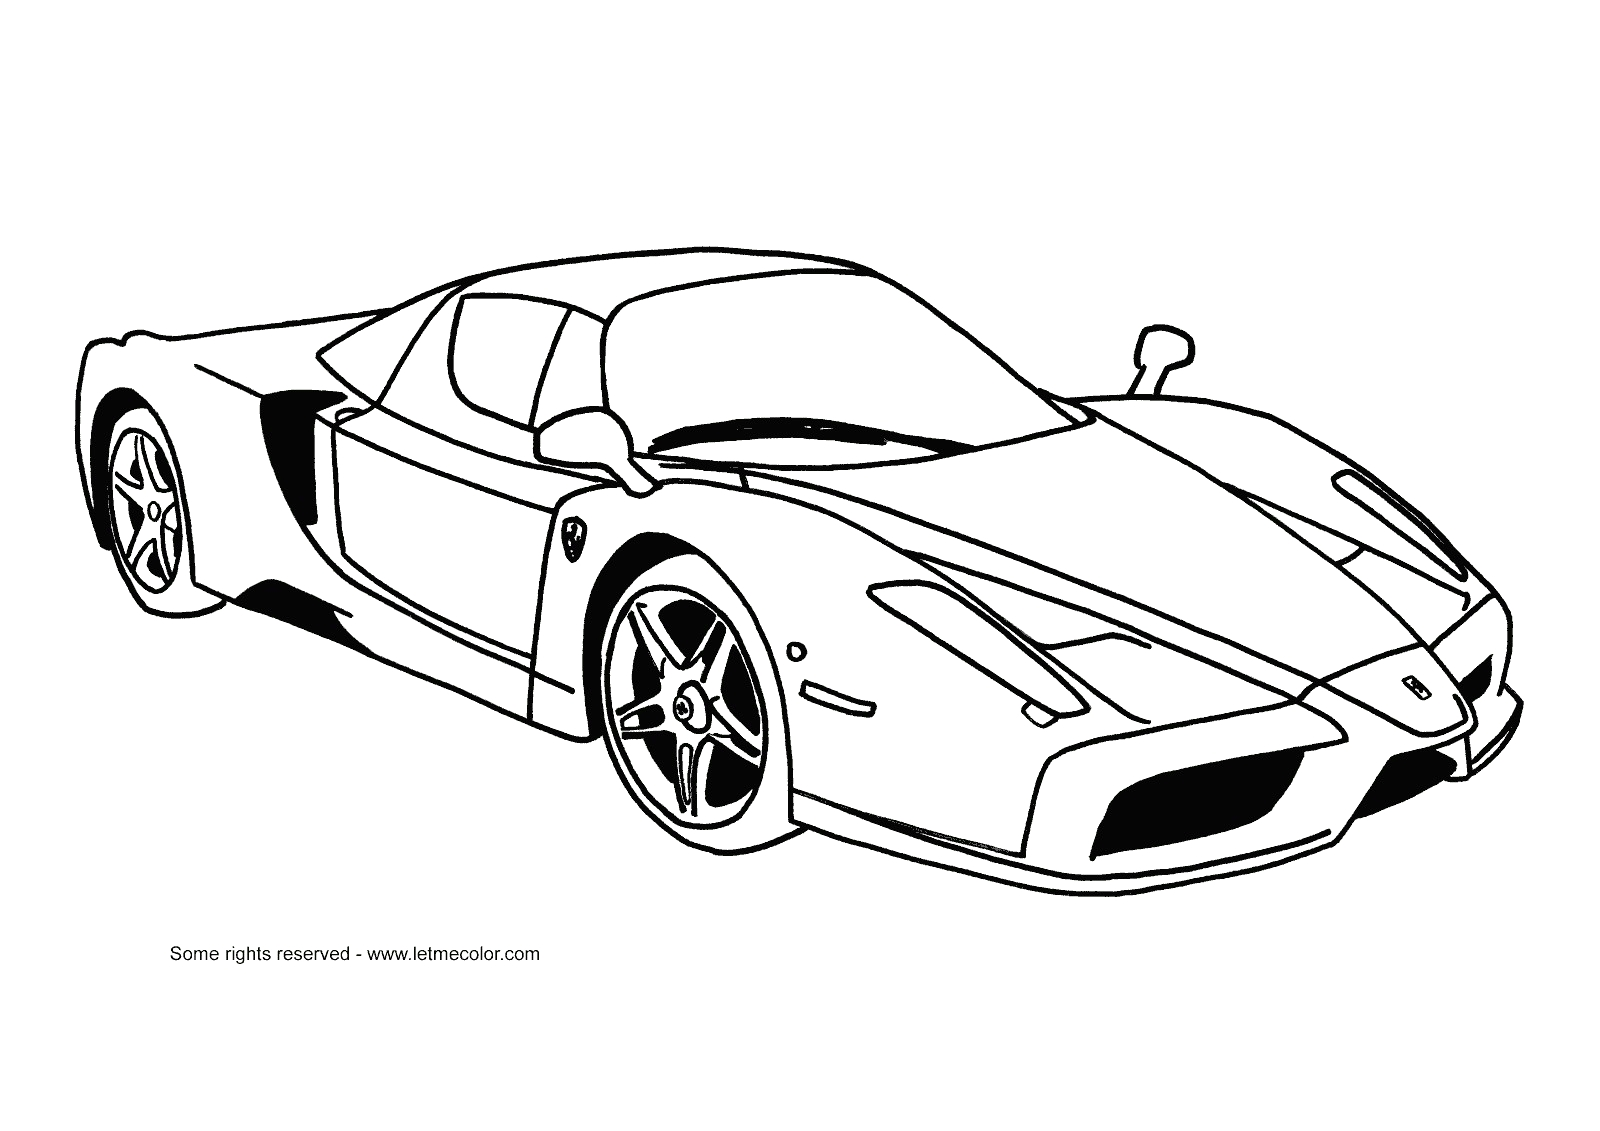 Ferrari coloring pages to download